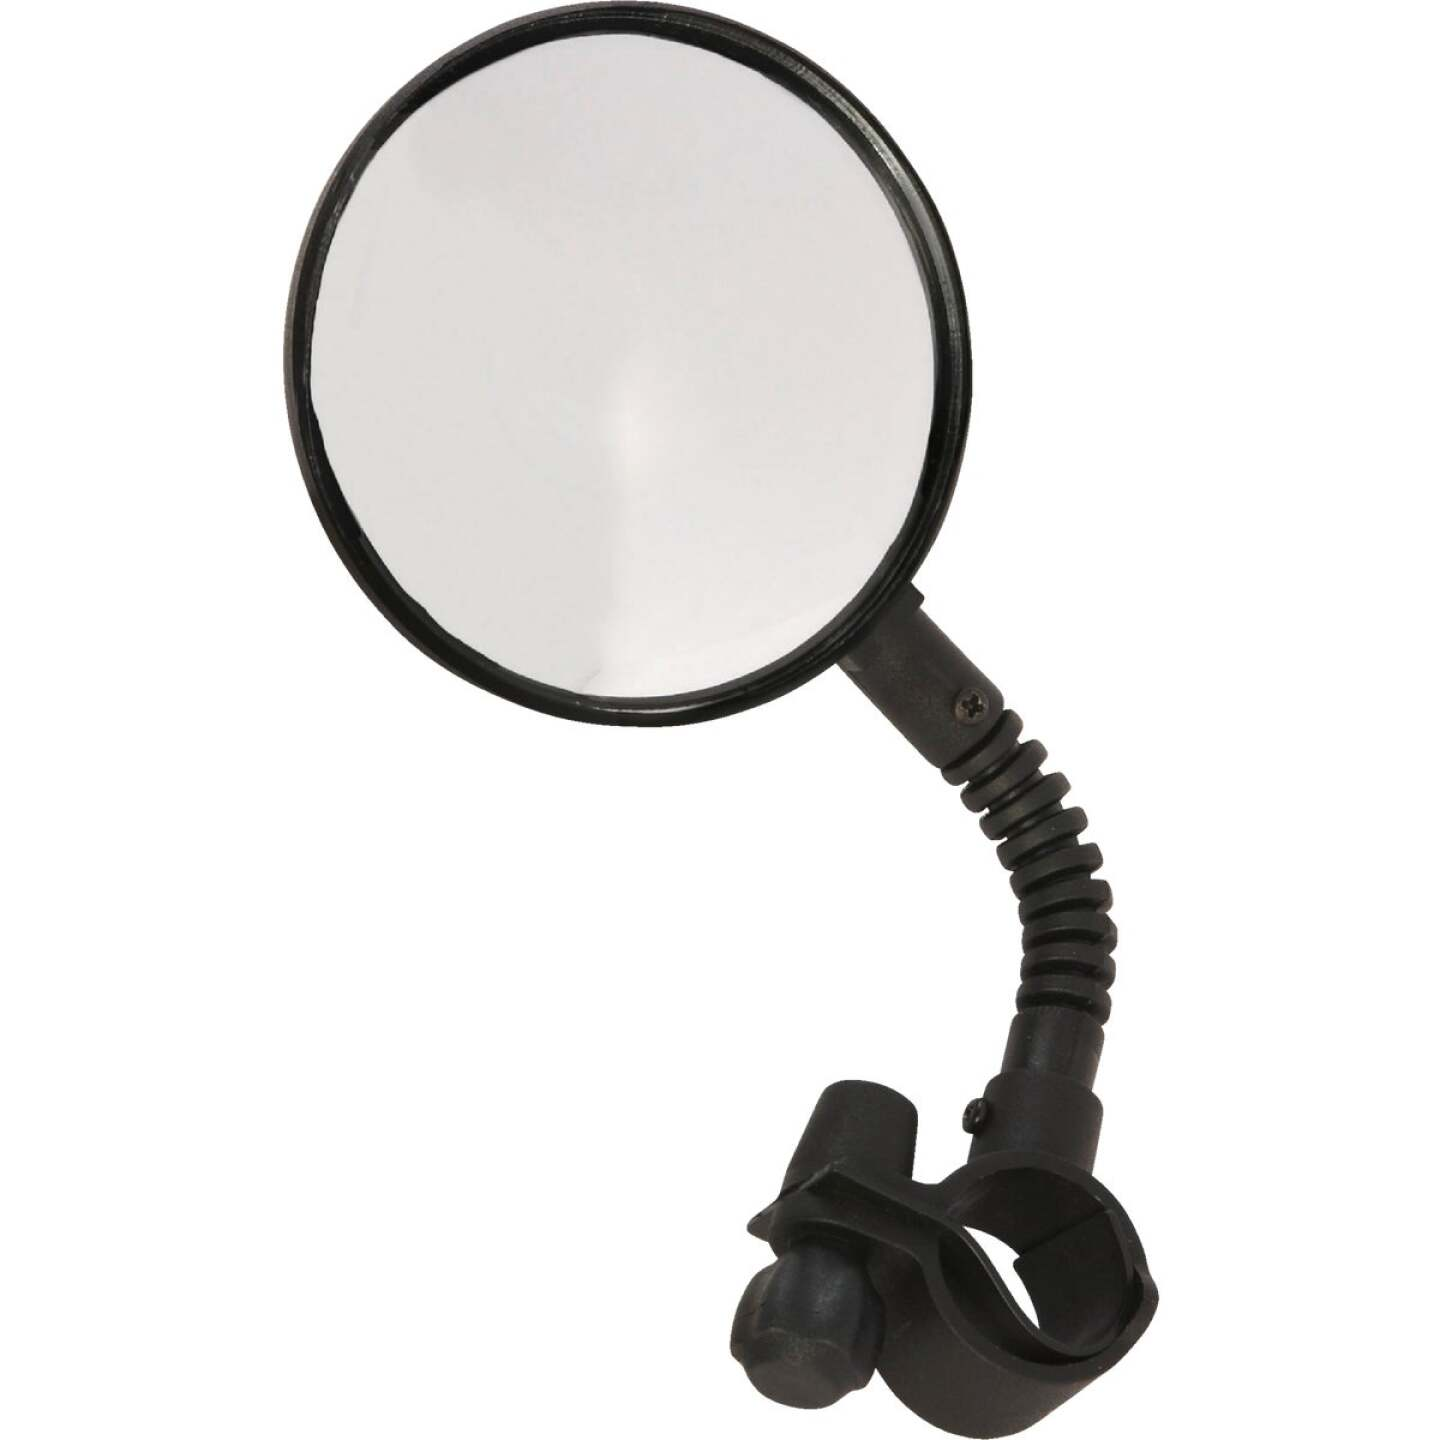 Bell Sports Flex Handlebar Convex Shatter Resistant Bicycle Mirror Image 1